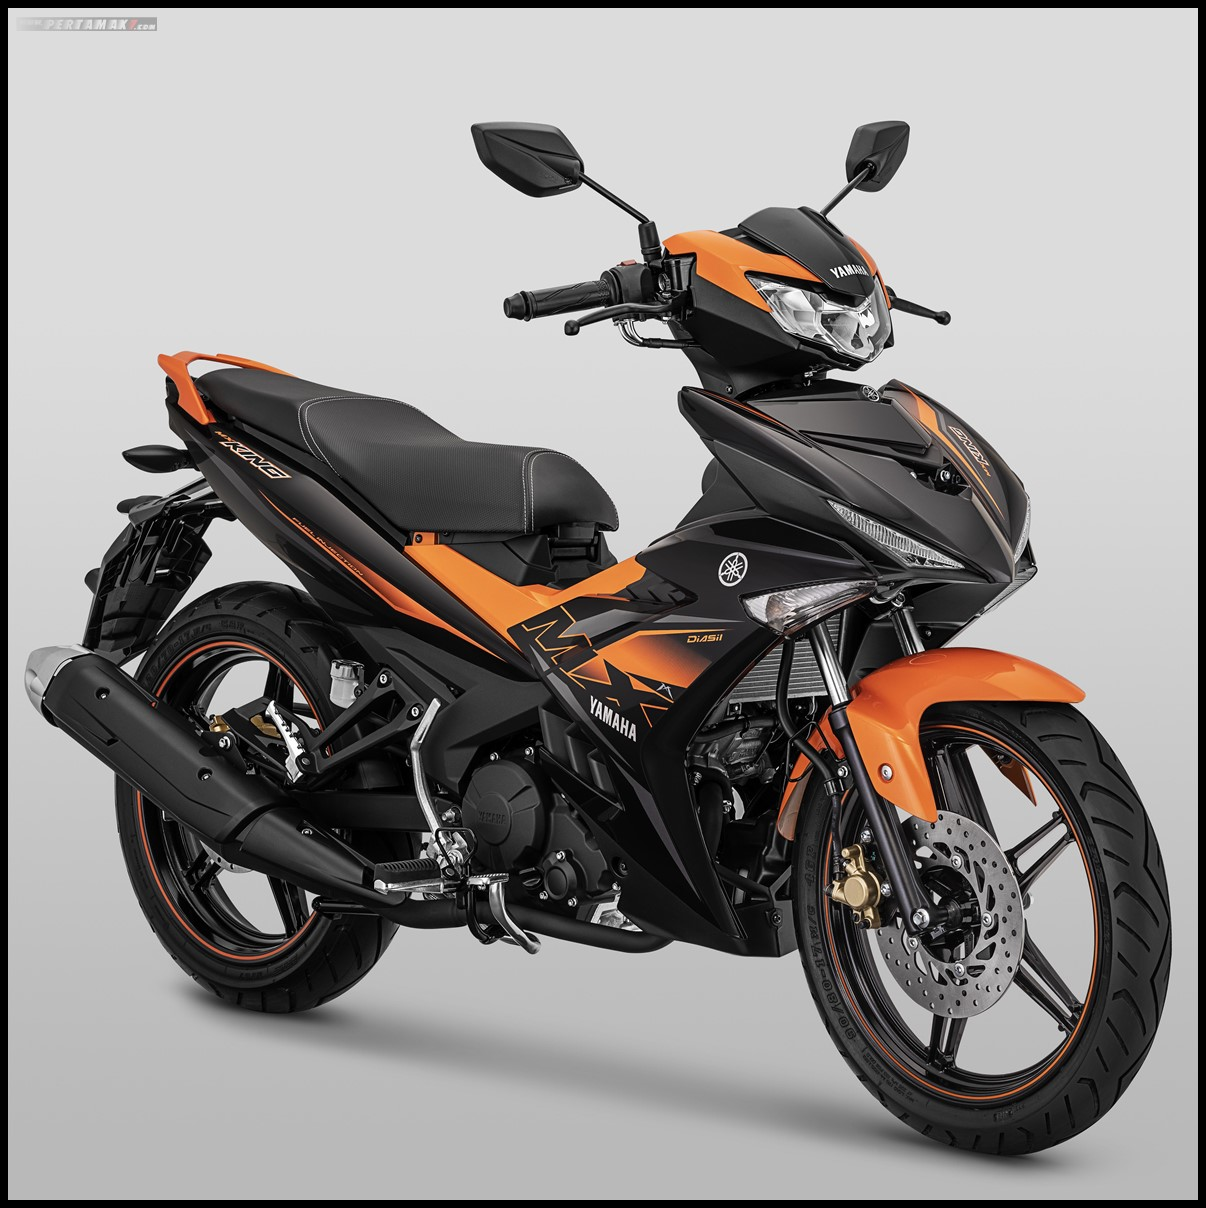 Yamaha MX KING 2019 Warna Oranye P7